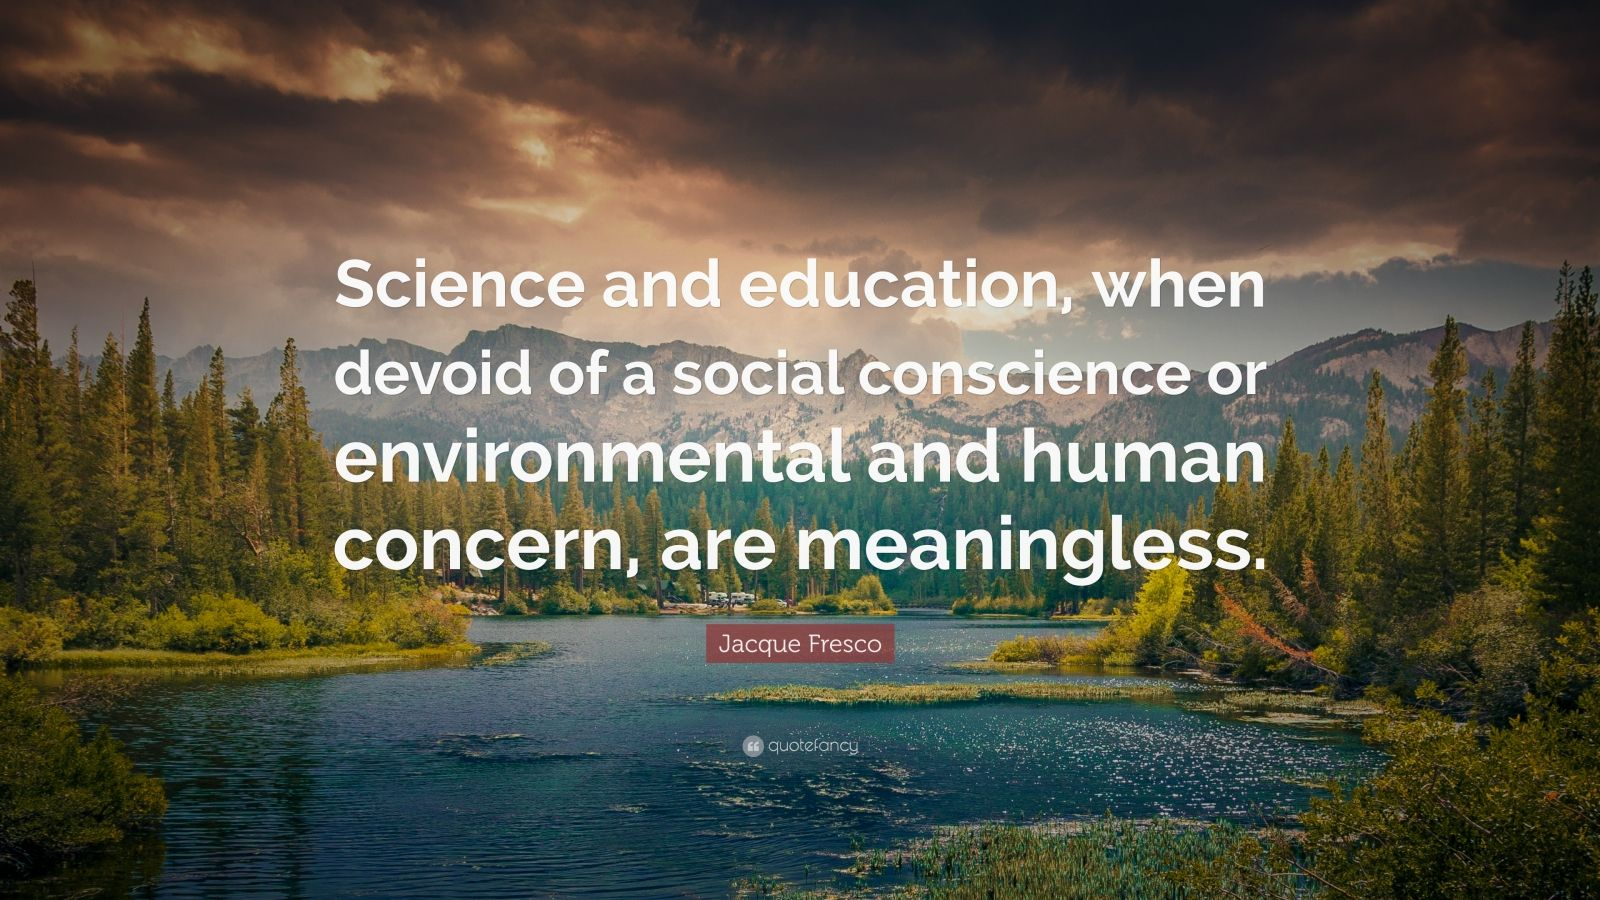 """Jacque Fresco Quote: """"Science and education, when devoid of a social conscience or environmental and human concern, are meaningless."""""""